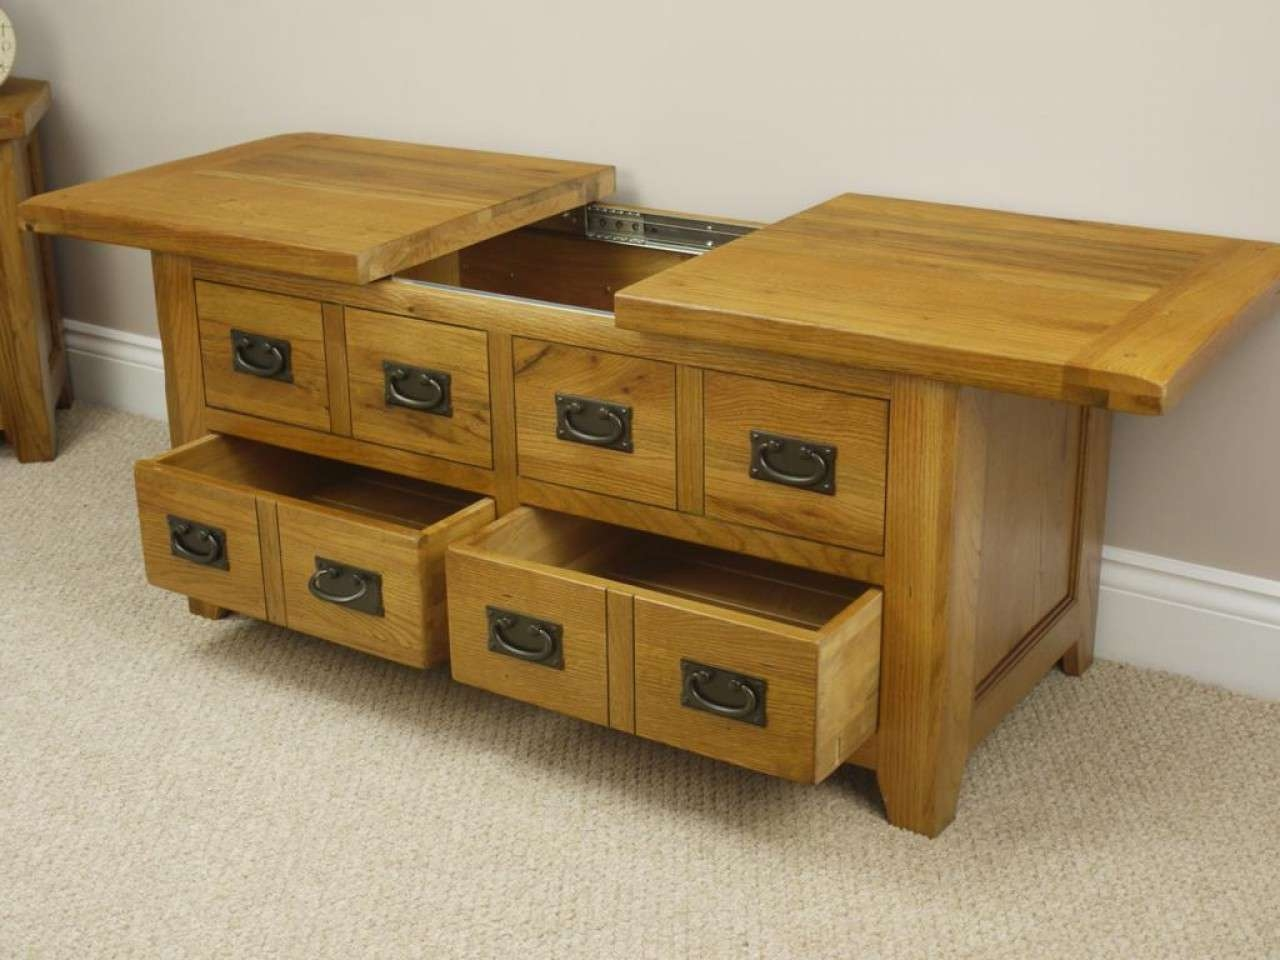 Widely Used Rustic Coffee Table Drawers In Coffee Tables : Pl Bo X Storage Coffee Tables Sonoma Table M S (View 19 of 20)